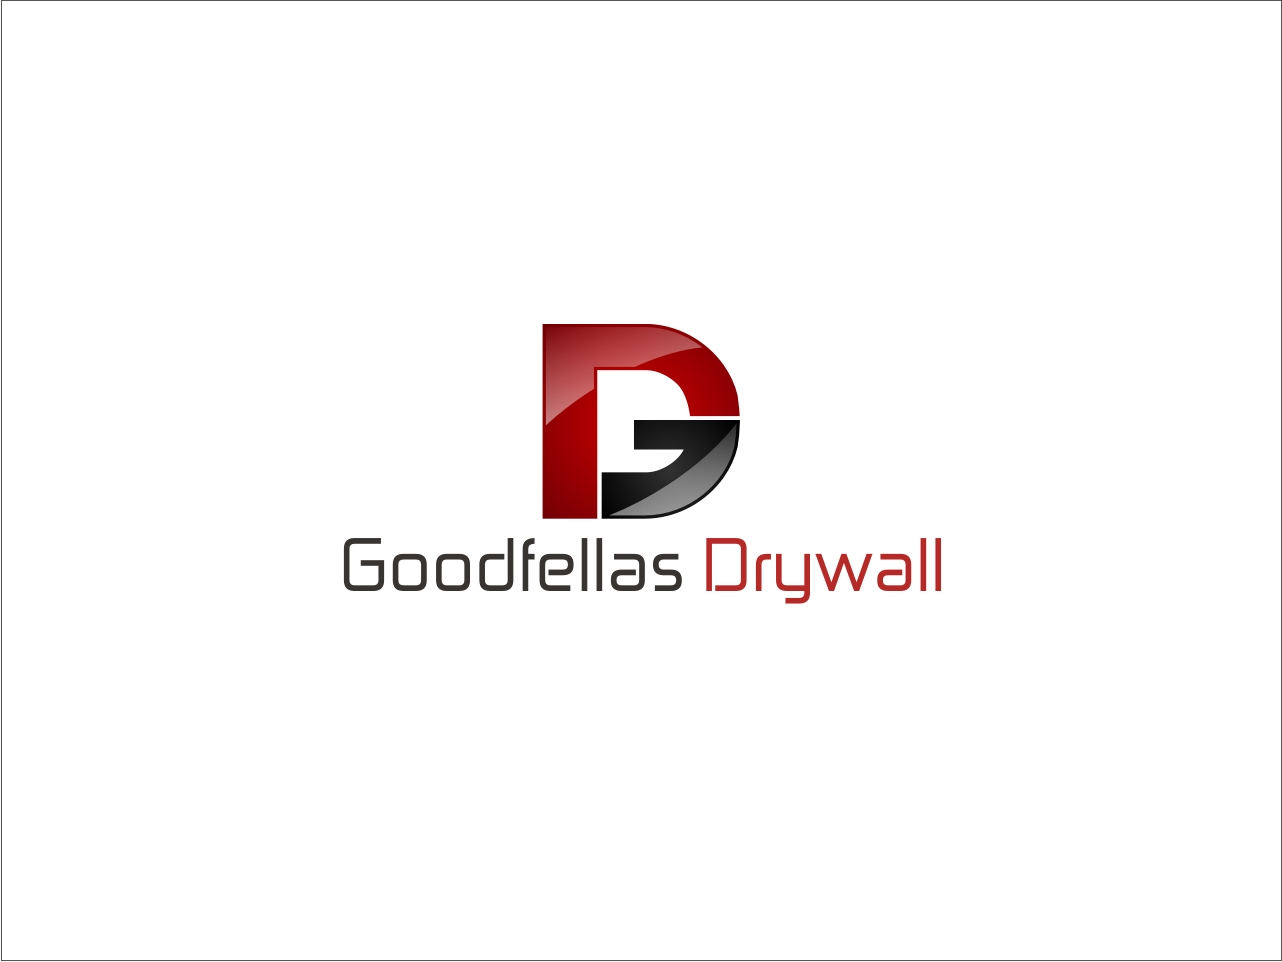 Logo Design by Private User - Entry No. 72 in the Logo Design Contest Creative Logo Design for Goodfellas Drywall.